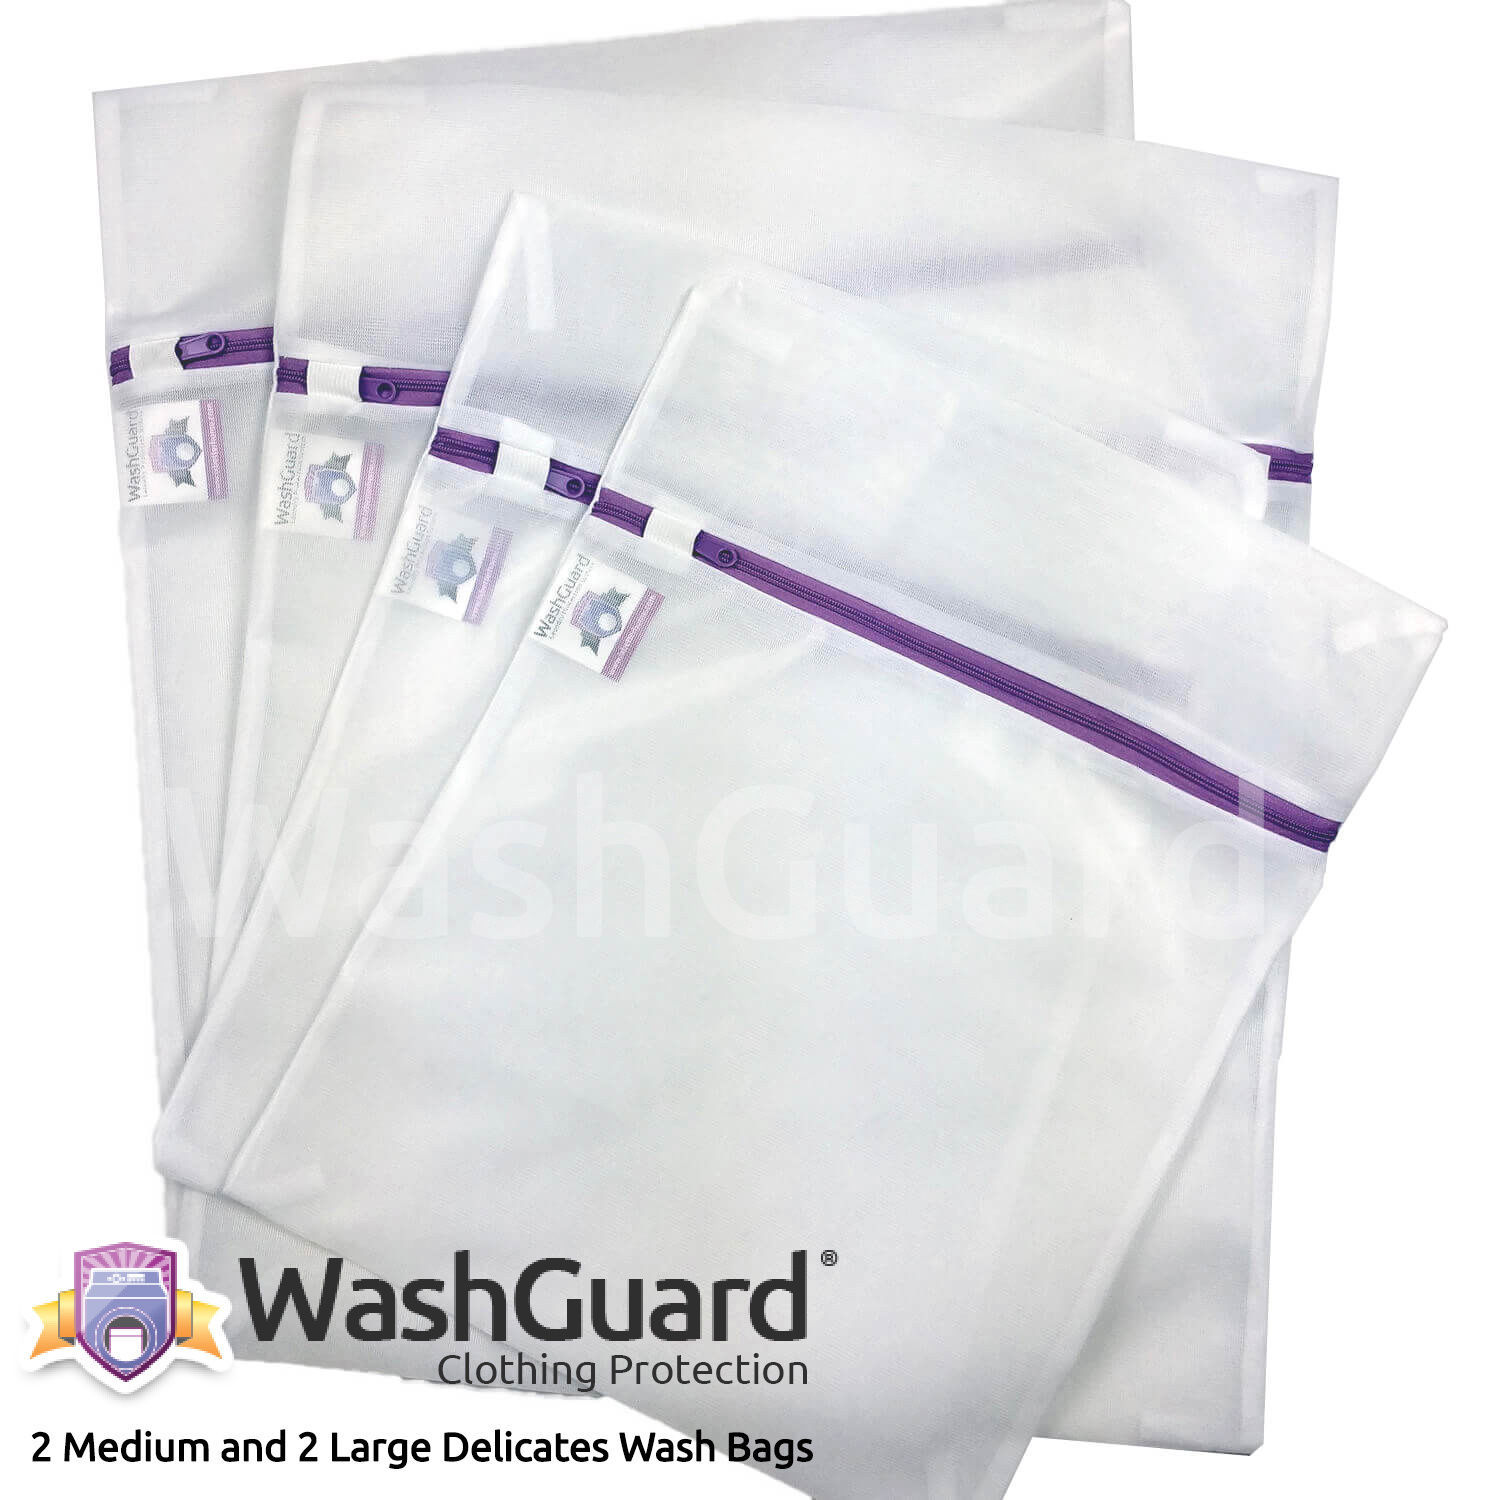 WashGuard Mesh Wash Bags for Laundry Protect Delicate Clothes & Underwear - 4pk